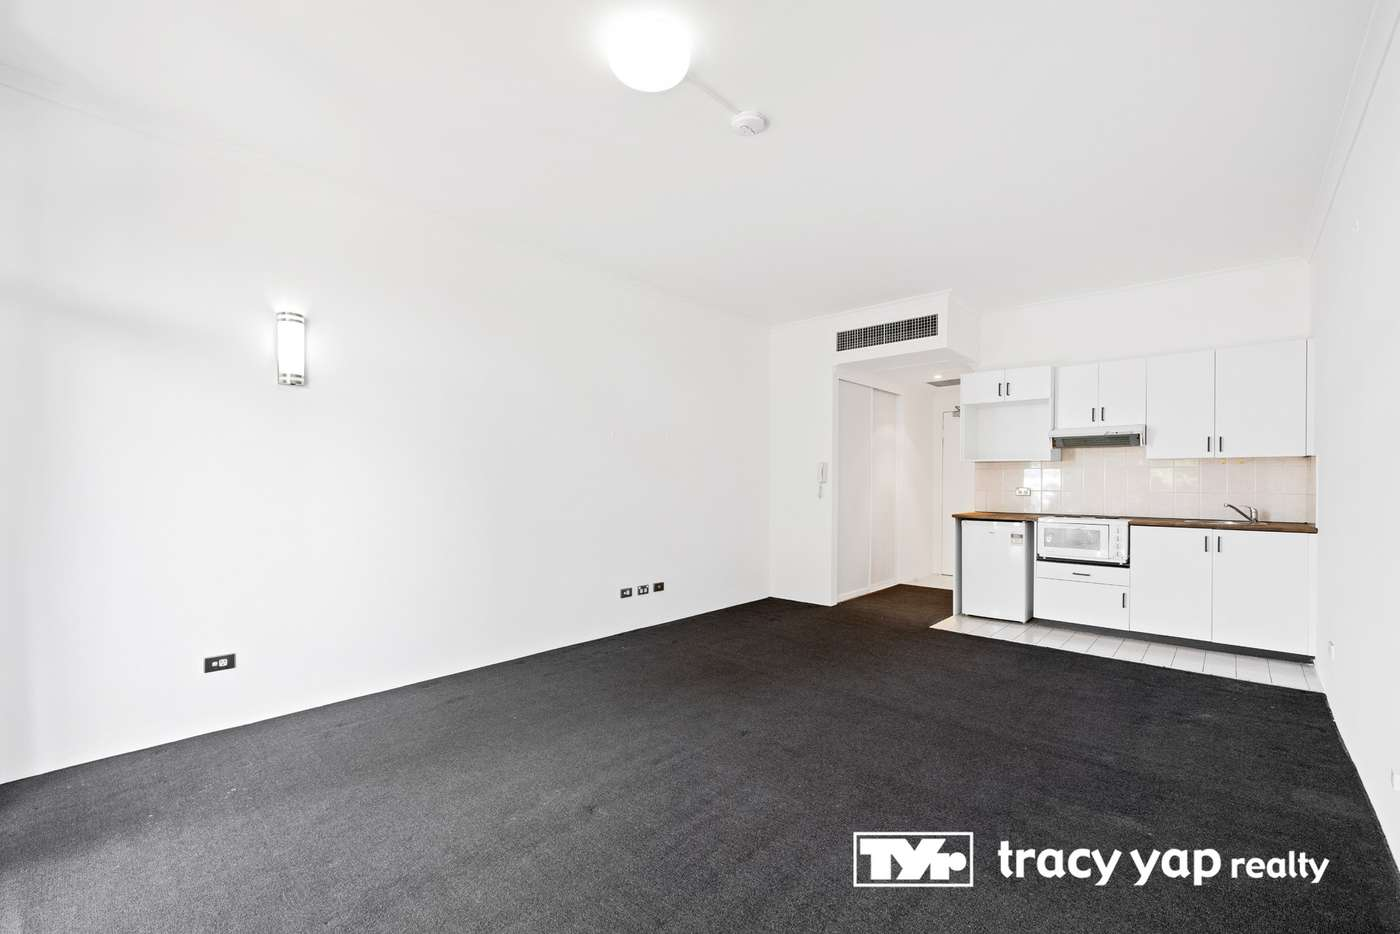 Main view of Homely studio listing, 60/75-79 Jersey Street North, Hornsby NSW 2077